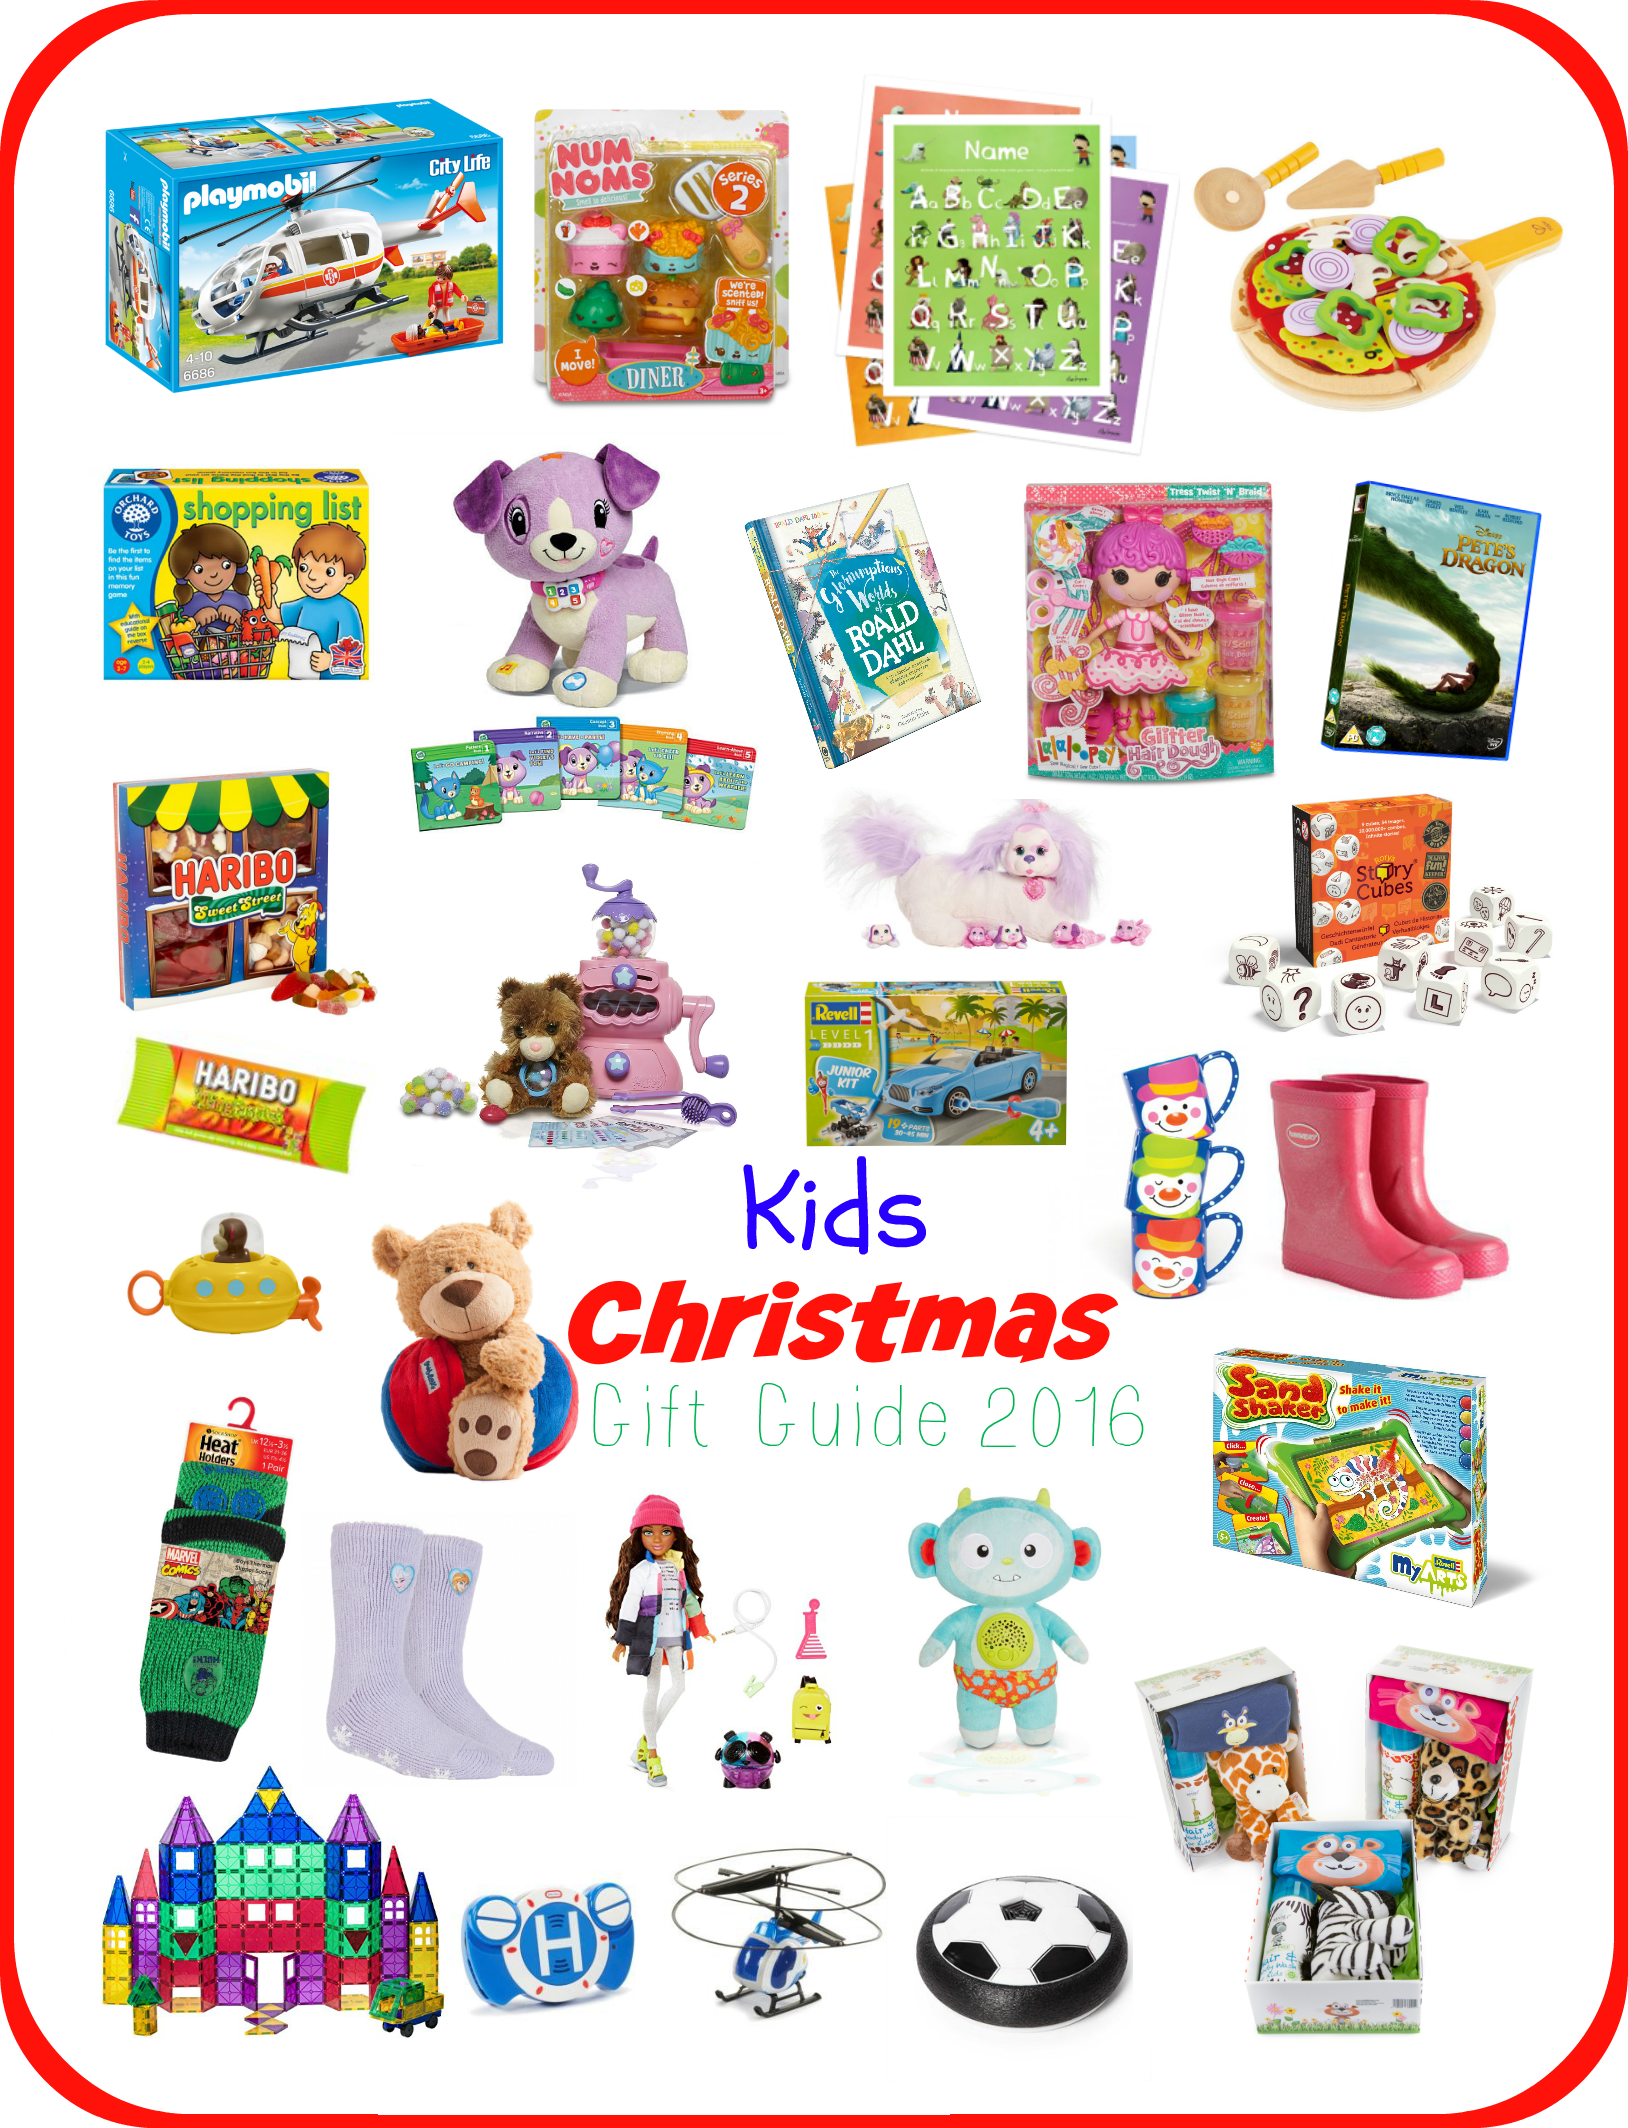 Kids Christmas Gift Guide 2016 - Serenity You